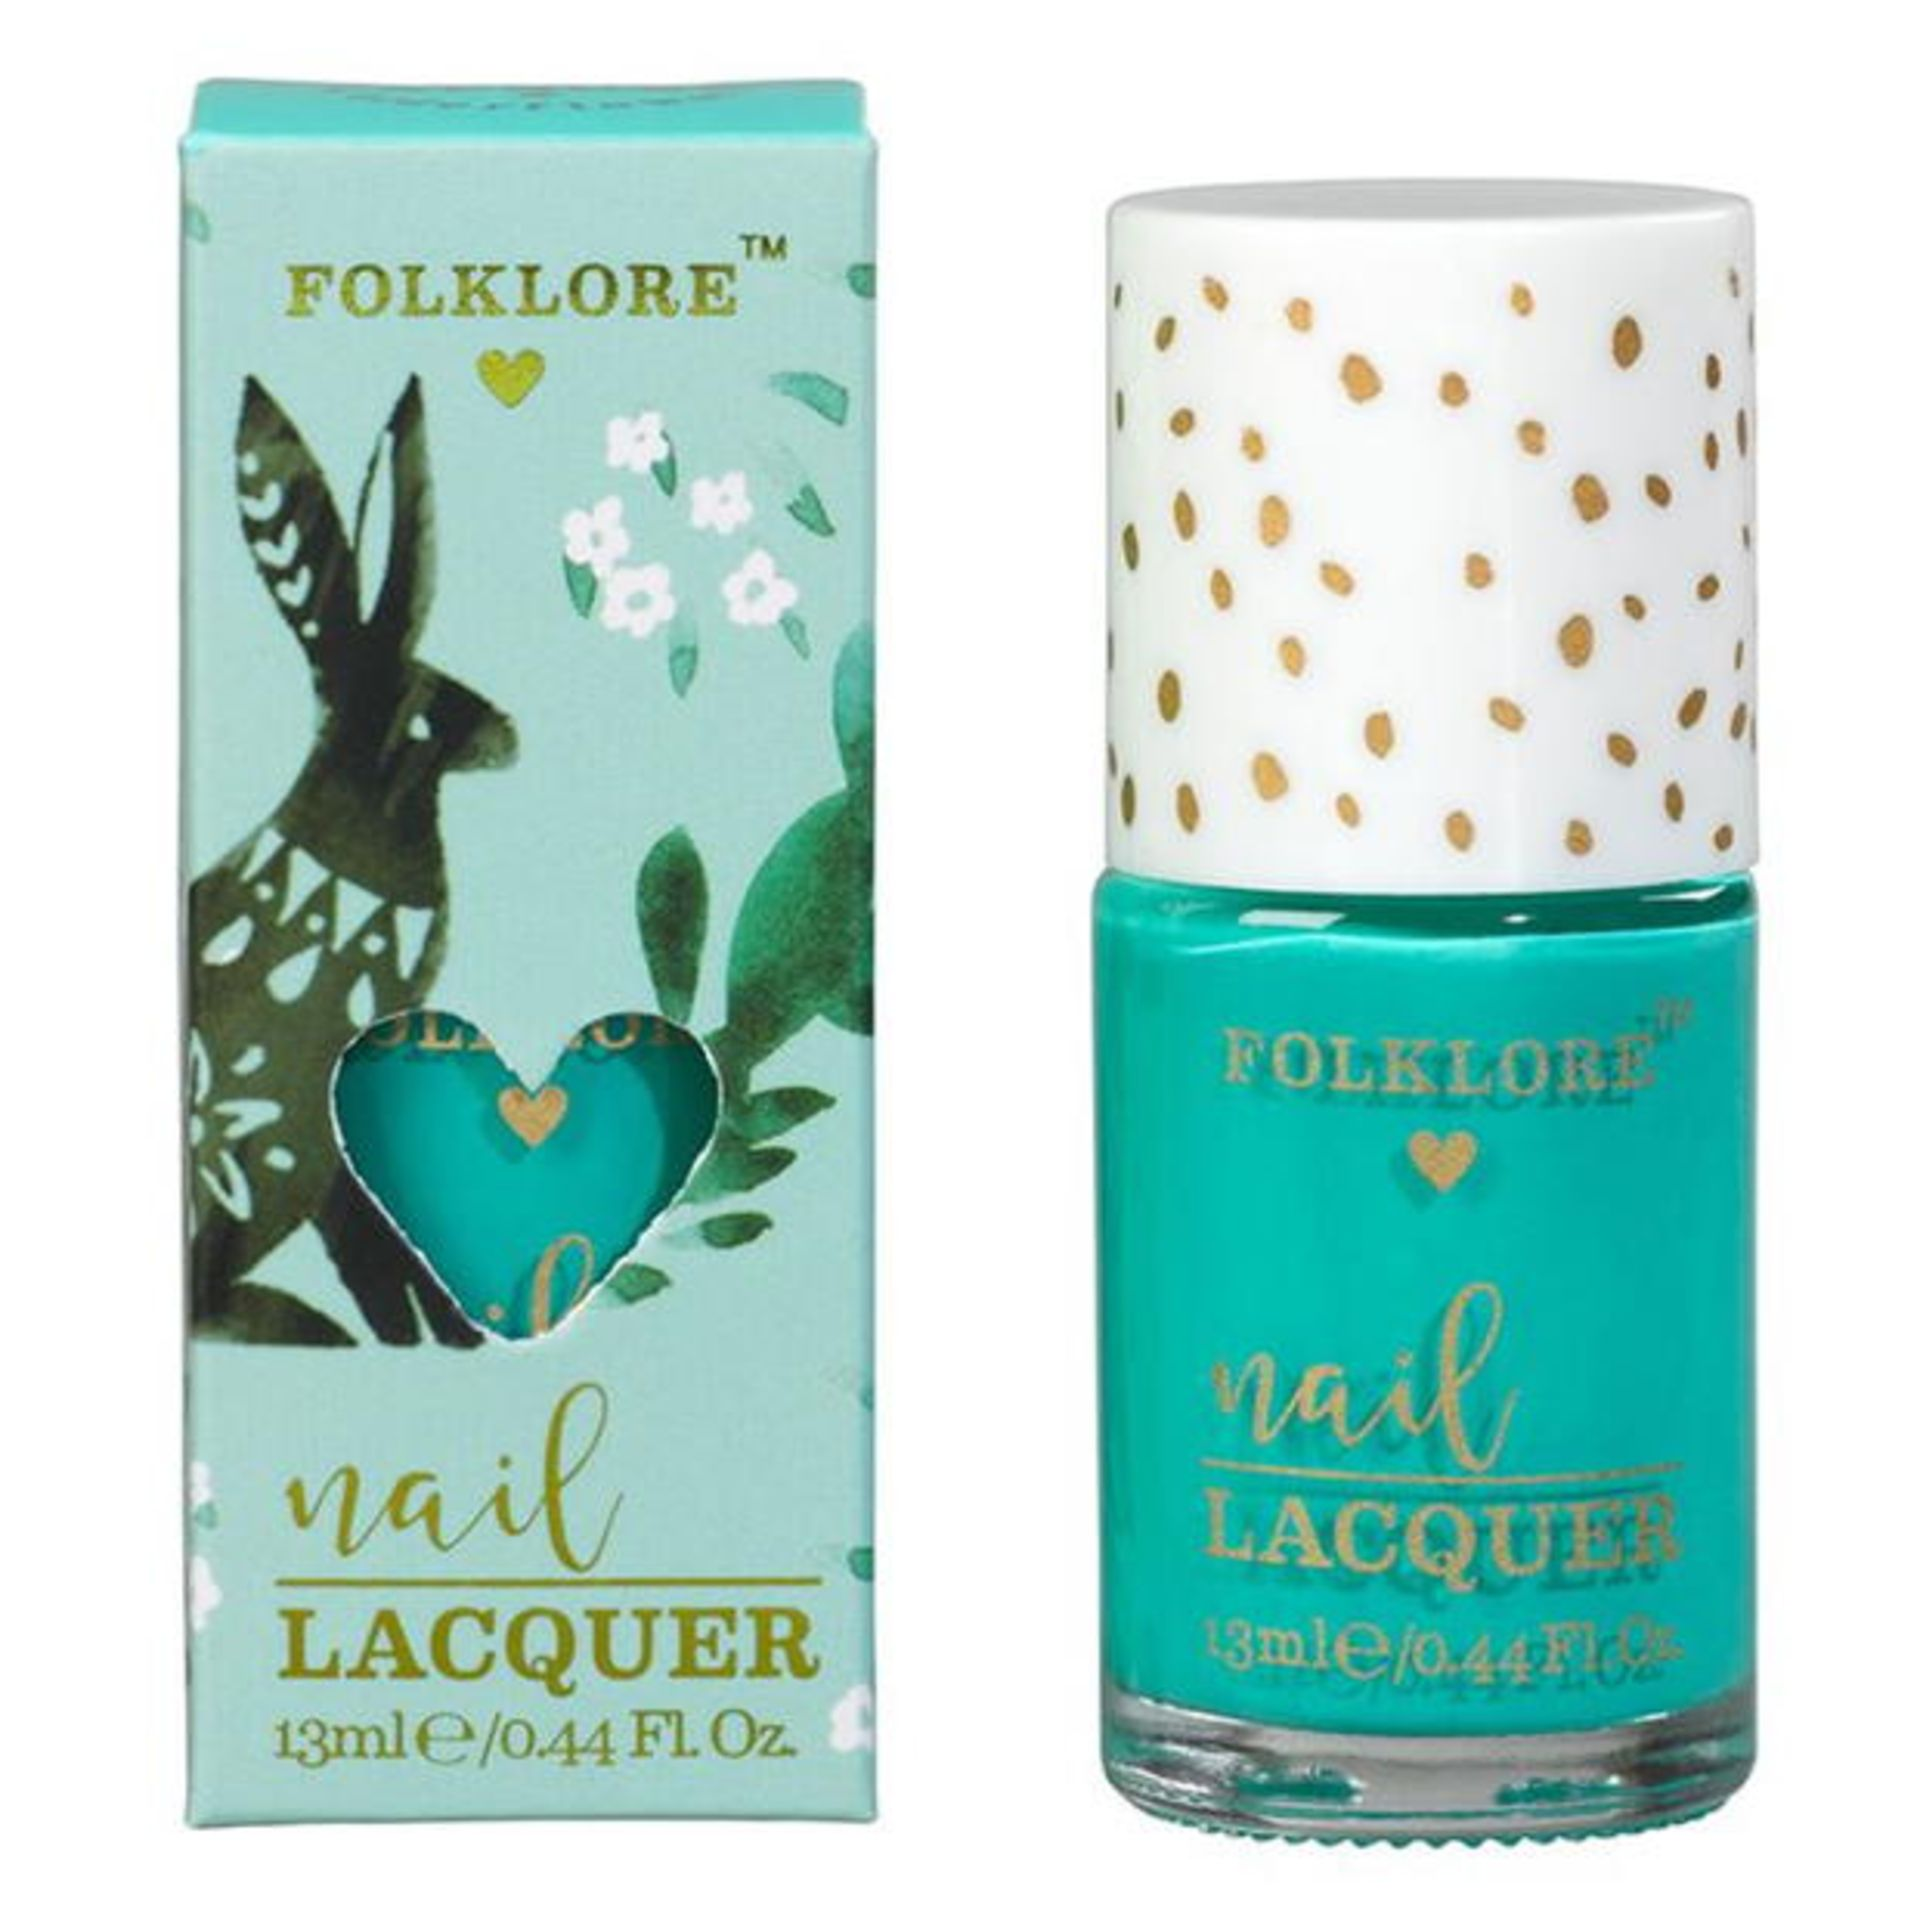 100 x Various Folklore Nail Lacquer   13ml   Total RRP £499 - Image 3 of 4